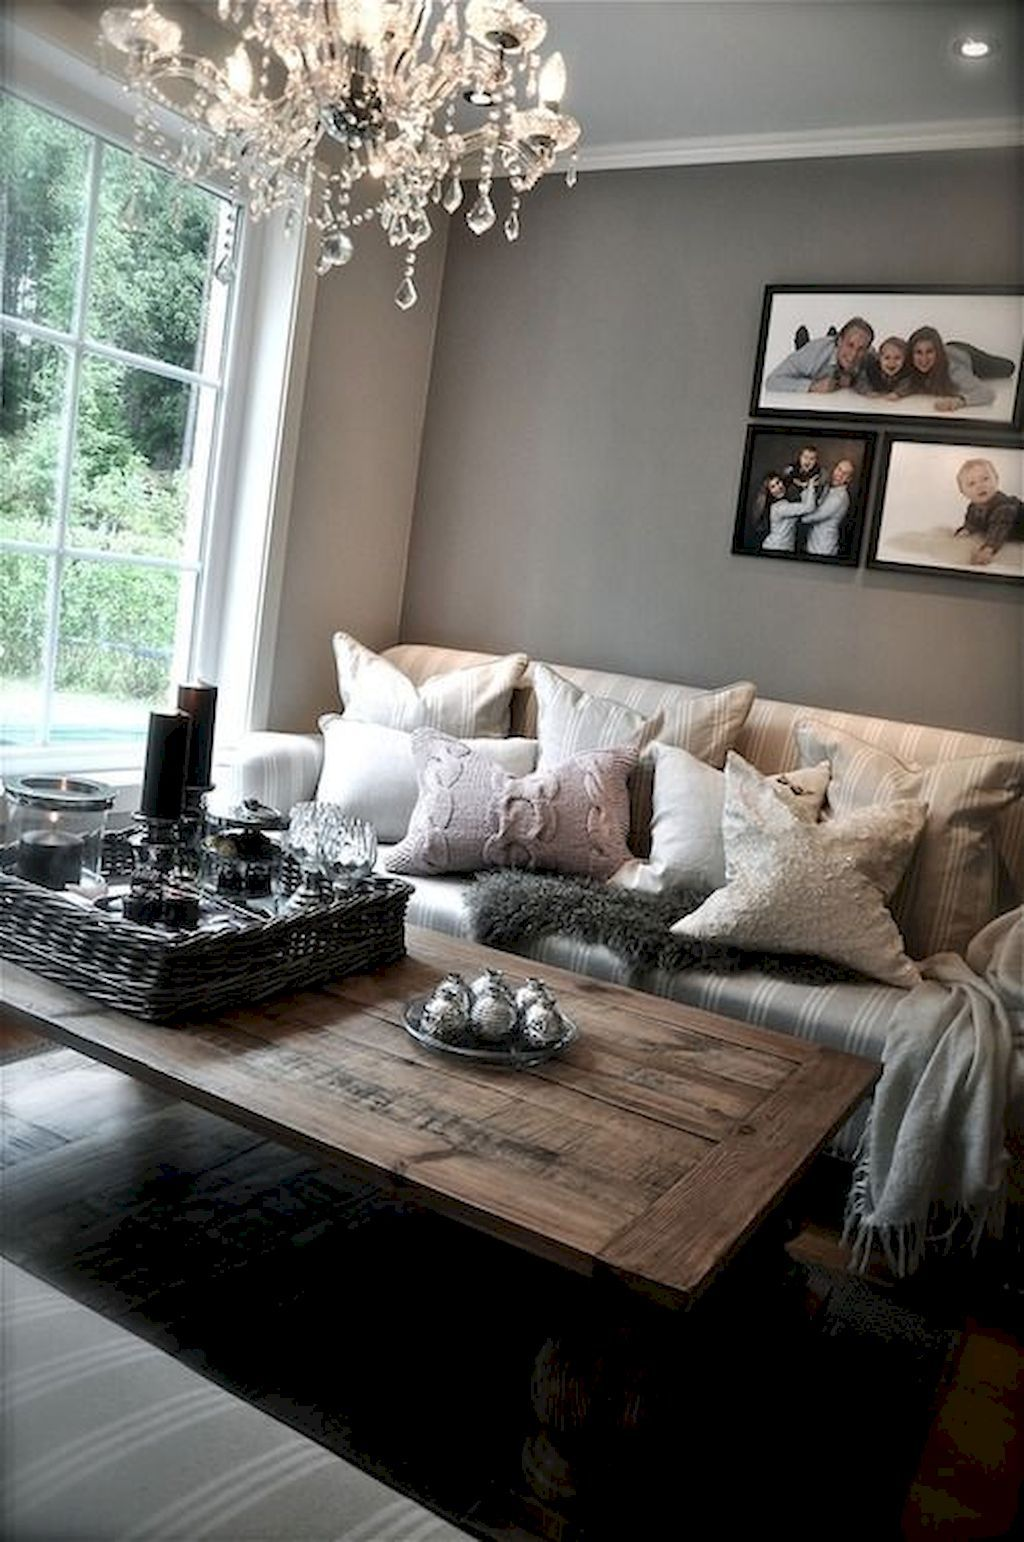 Find The Look Youre Going For In Cozy Living Room